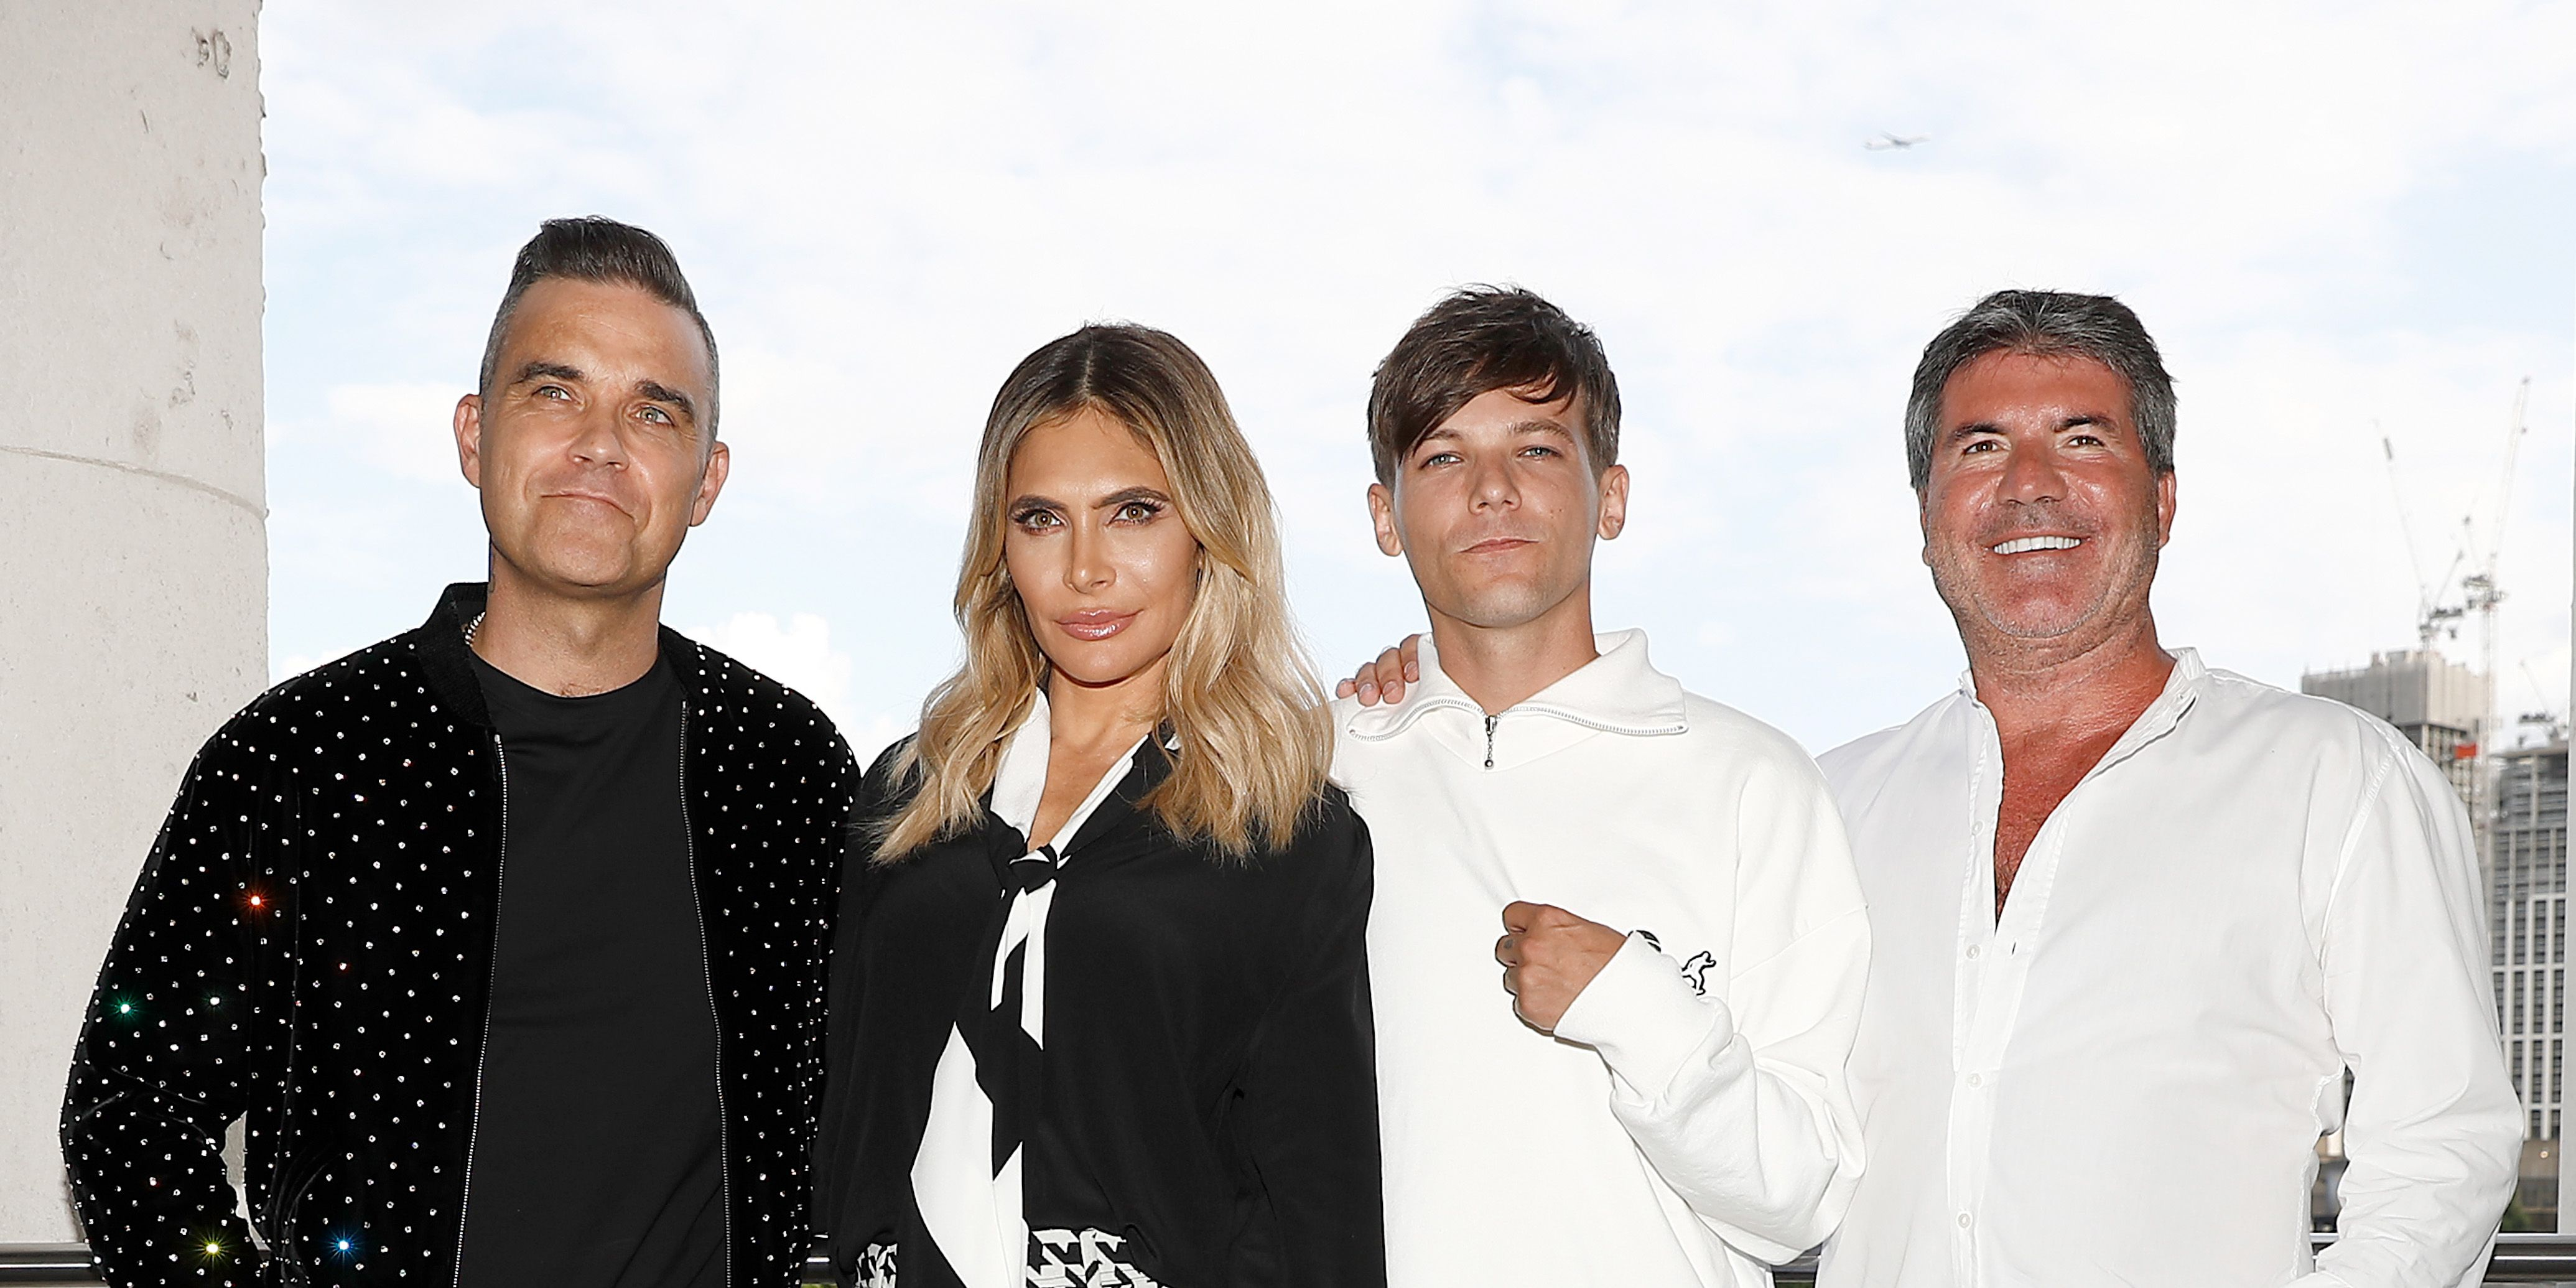 Robbie Williams, his wife and Louis Tomlinson are all but confirmed for X Factor judging panel